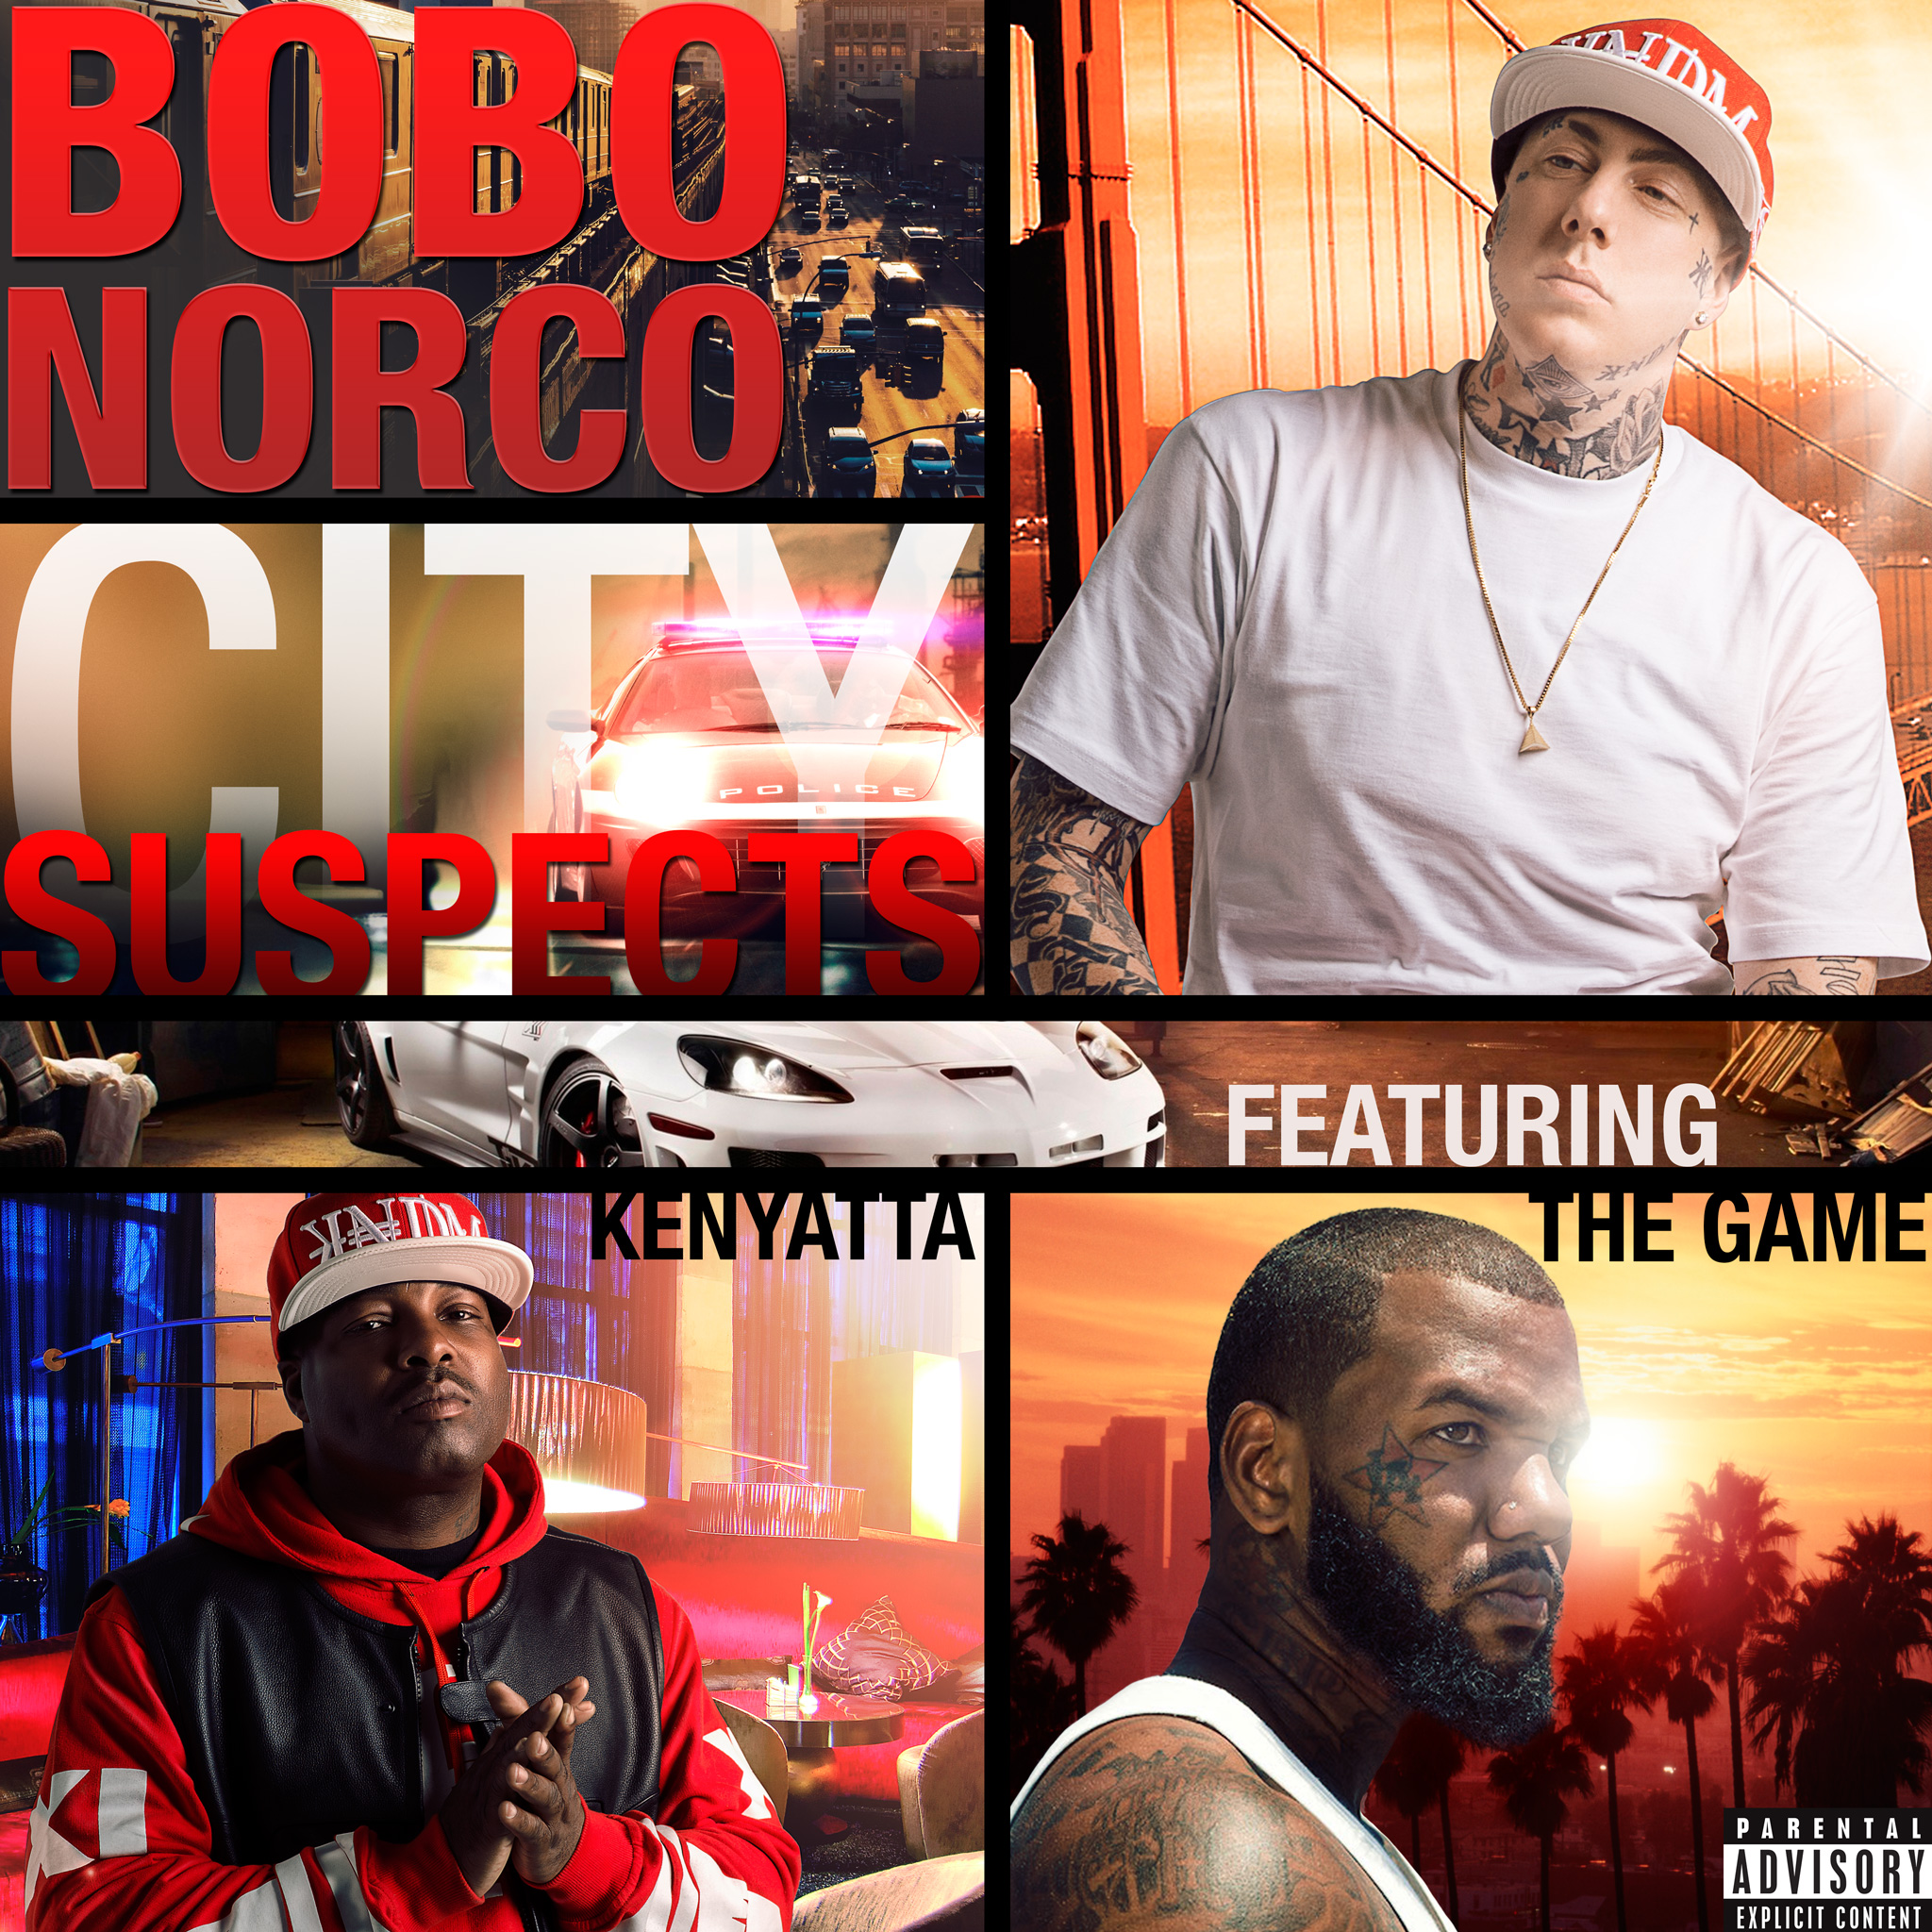 bobo-grand-city-suspects-2048-update-6-pa.jpg